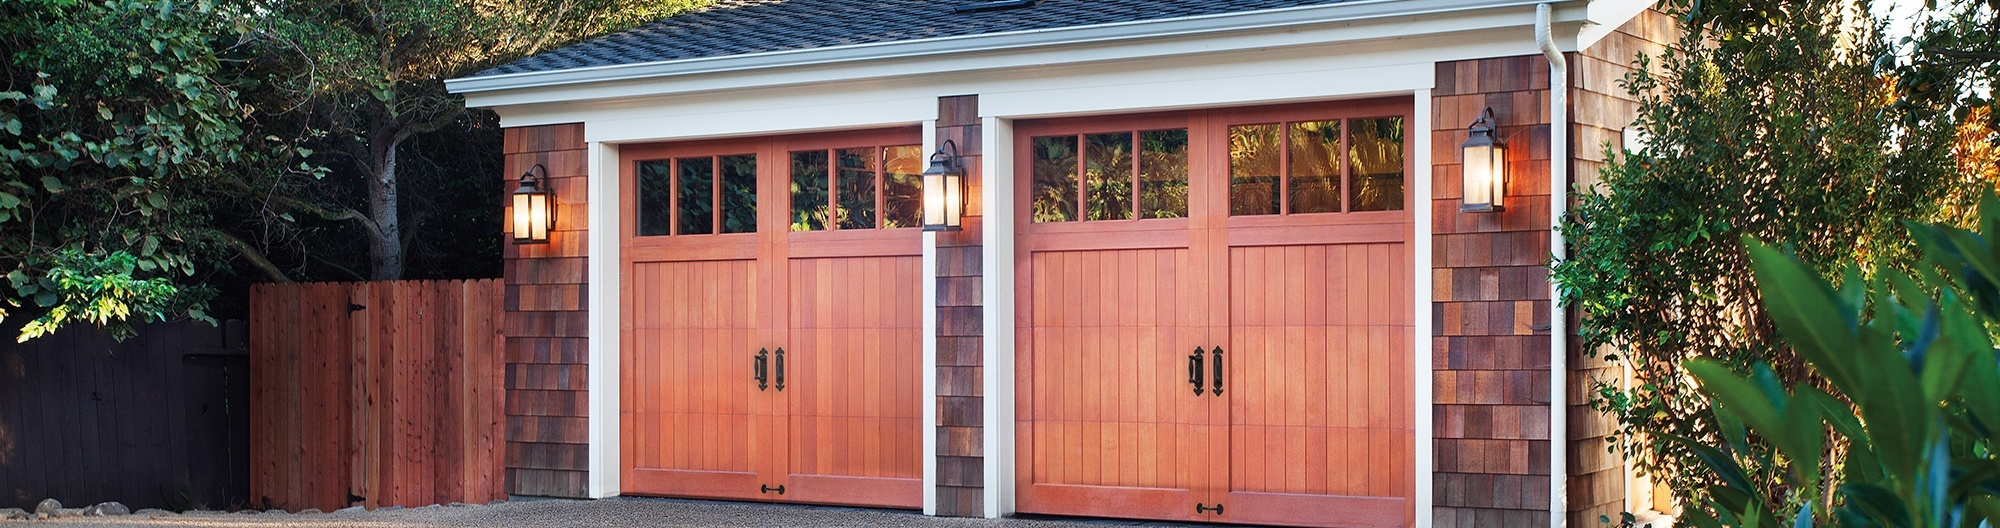 two wooden carriage garage doors